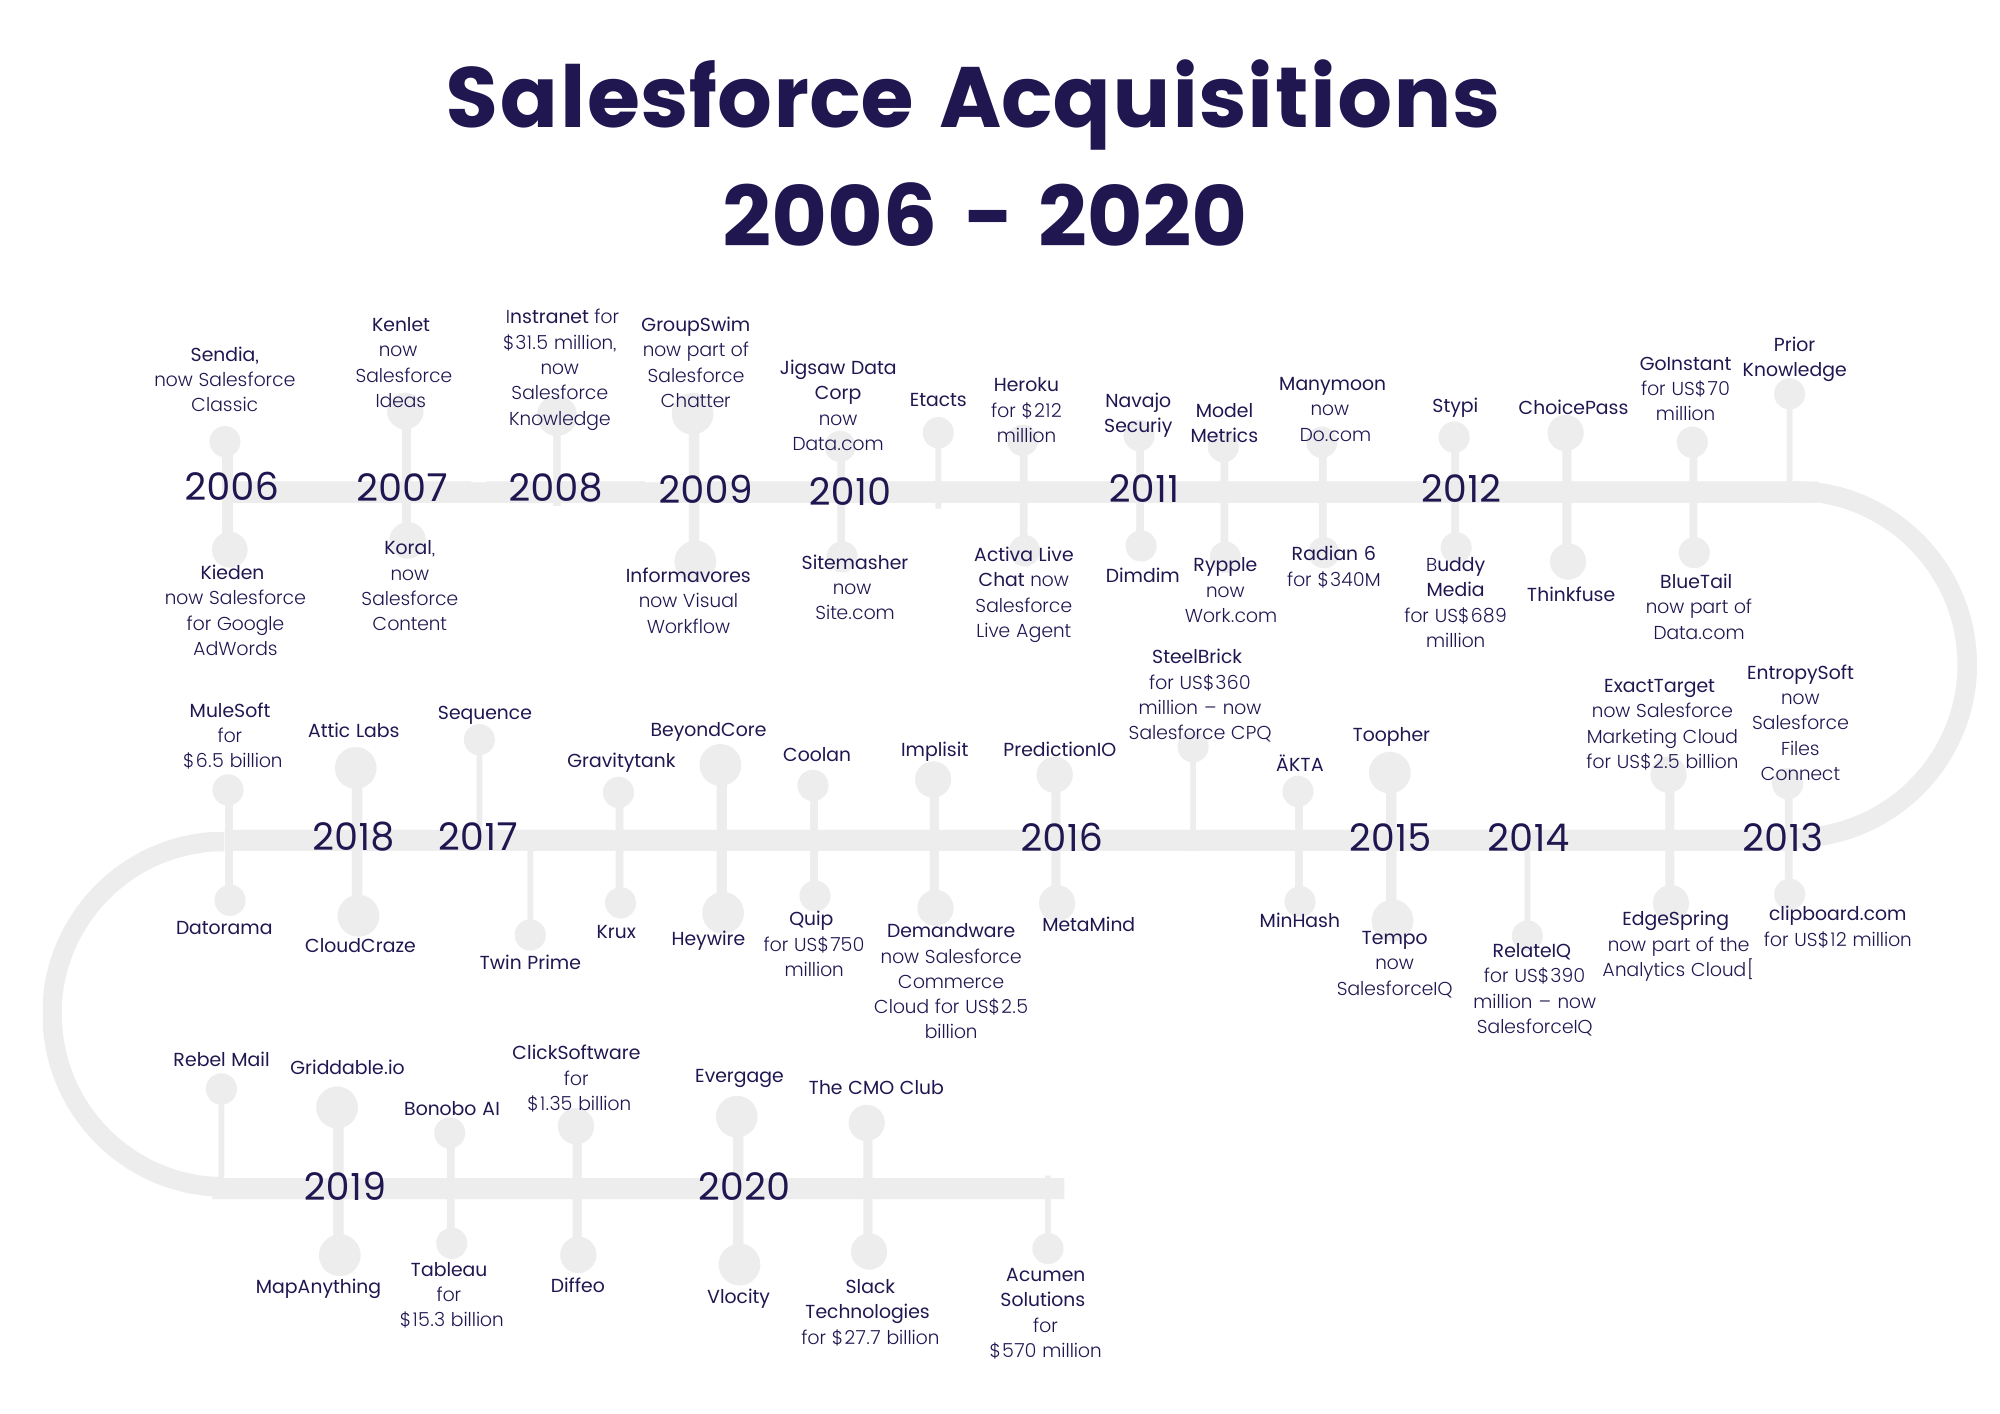 Top Salesforce Acquisitions Of All Time and In 2020